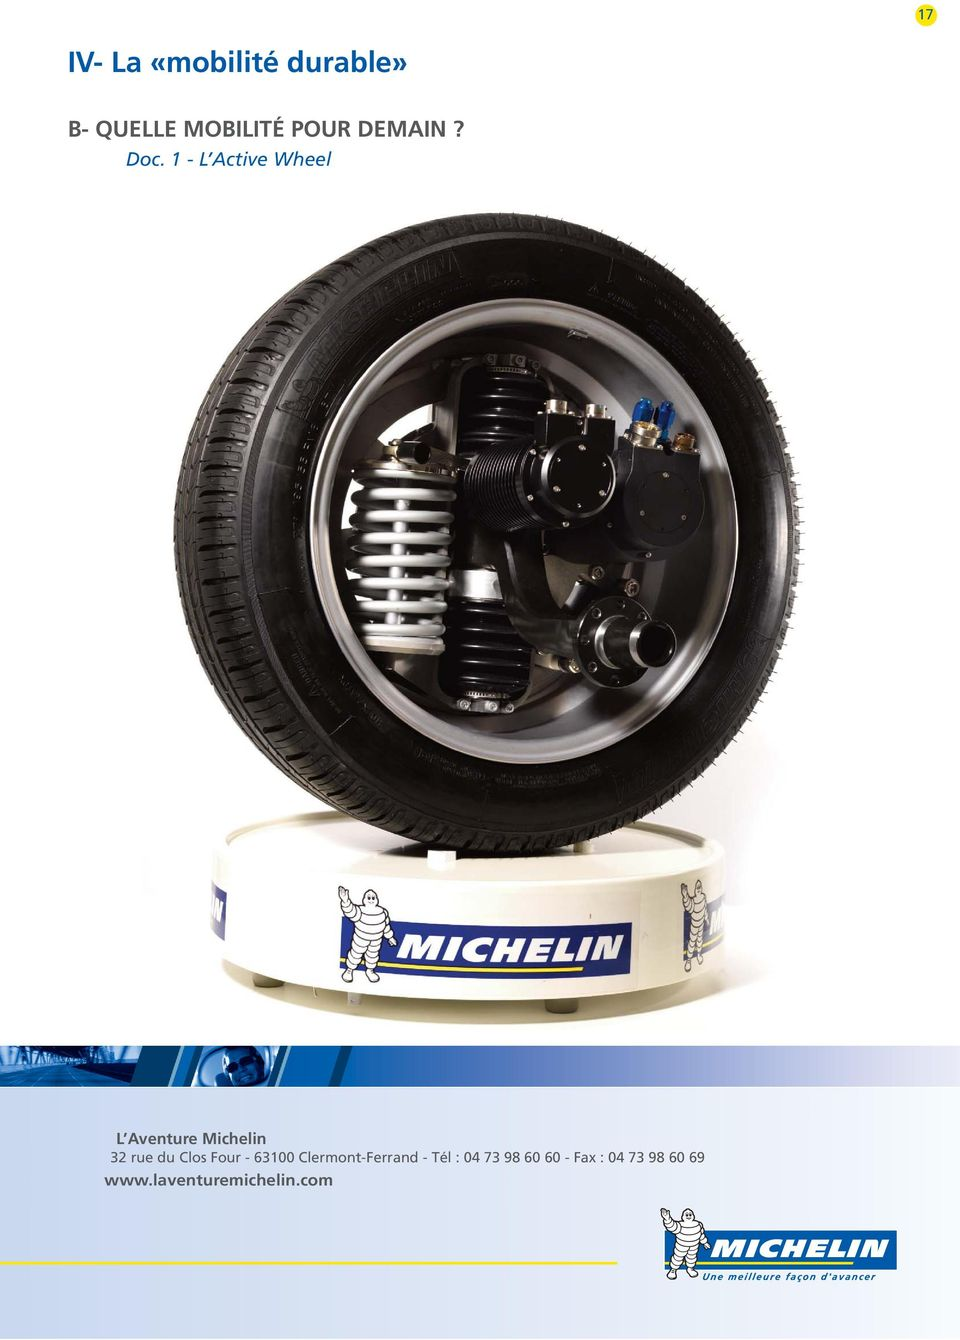 1 - L Active Wheel L Aventure Michelin 32 rue du Clos